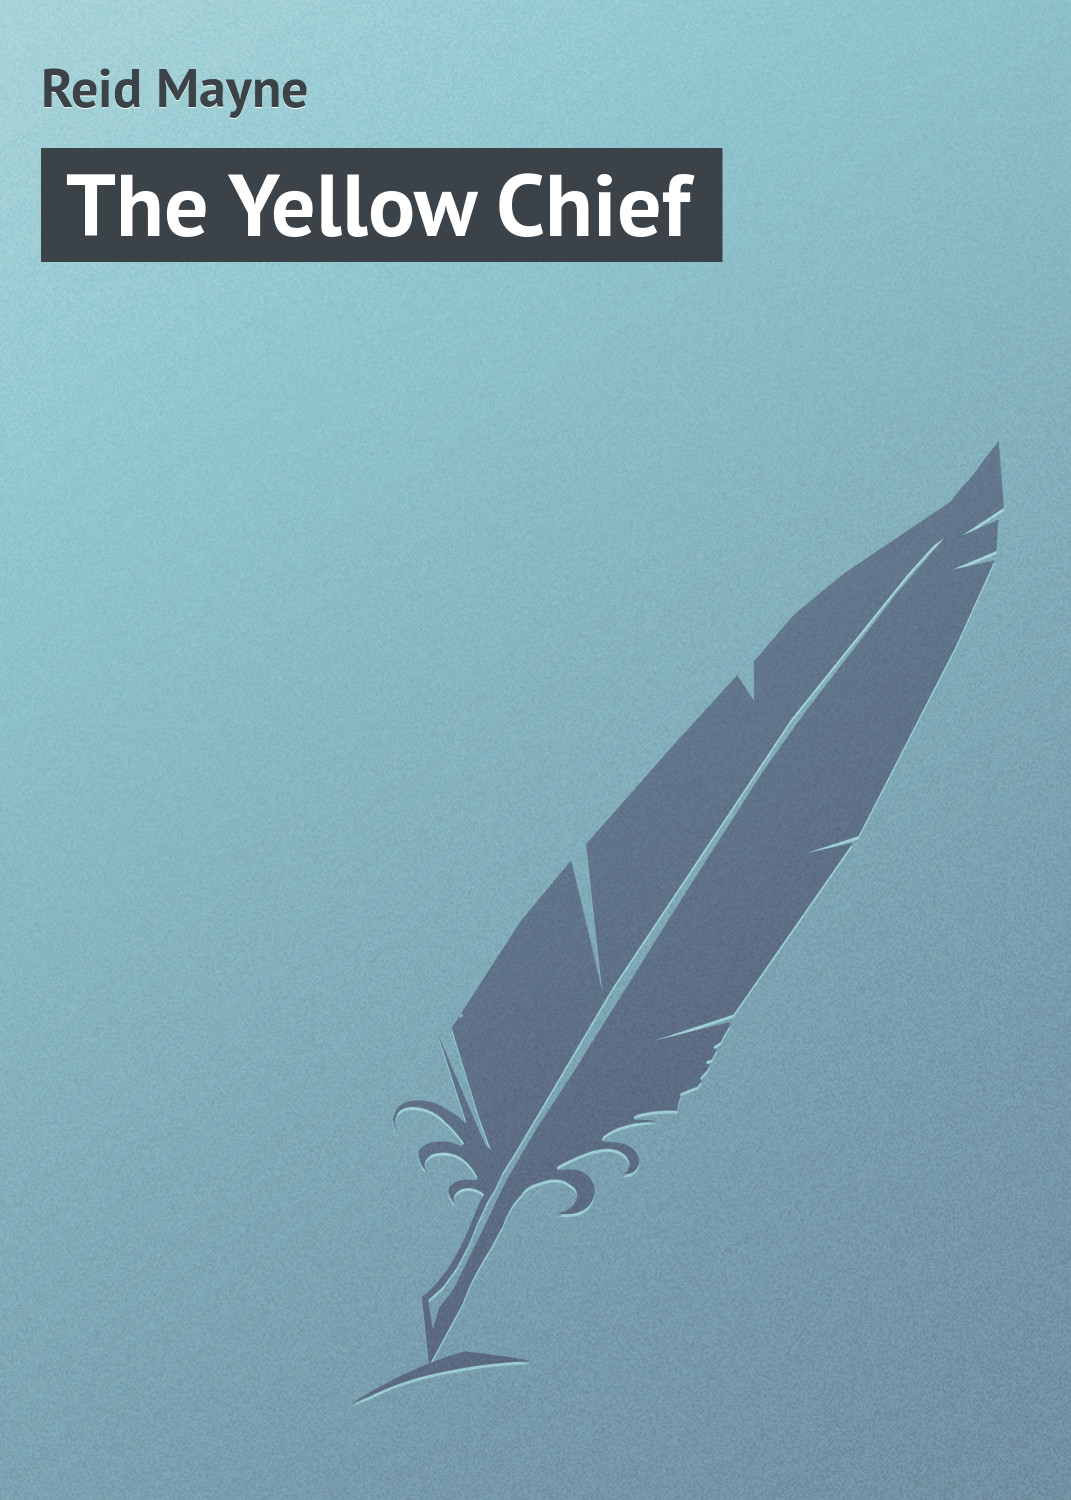 The Yellow Chief